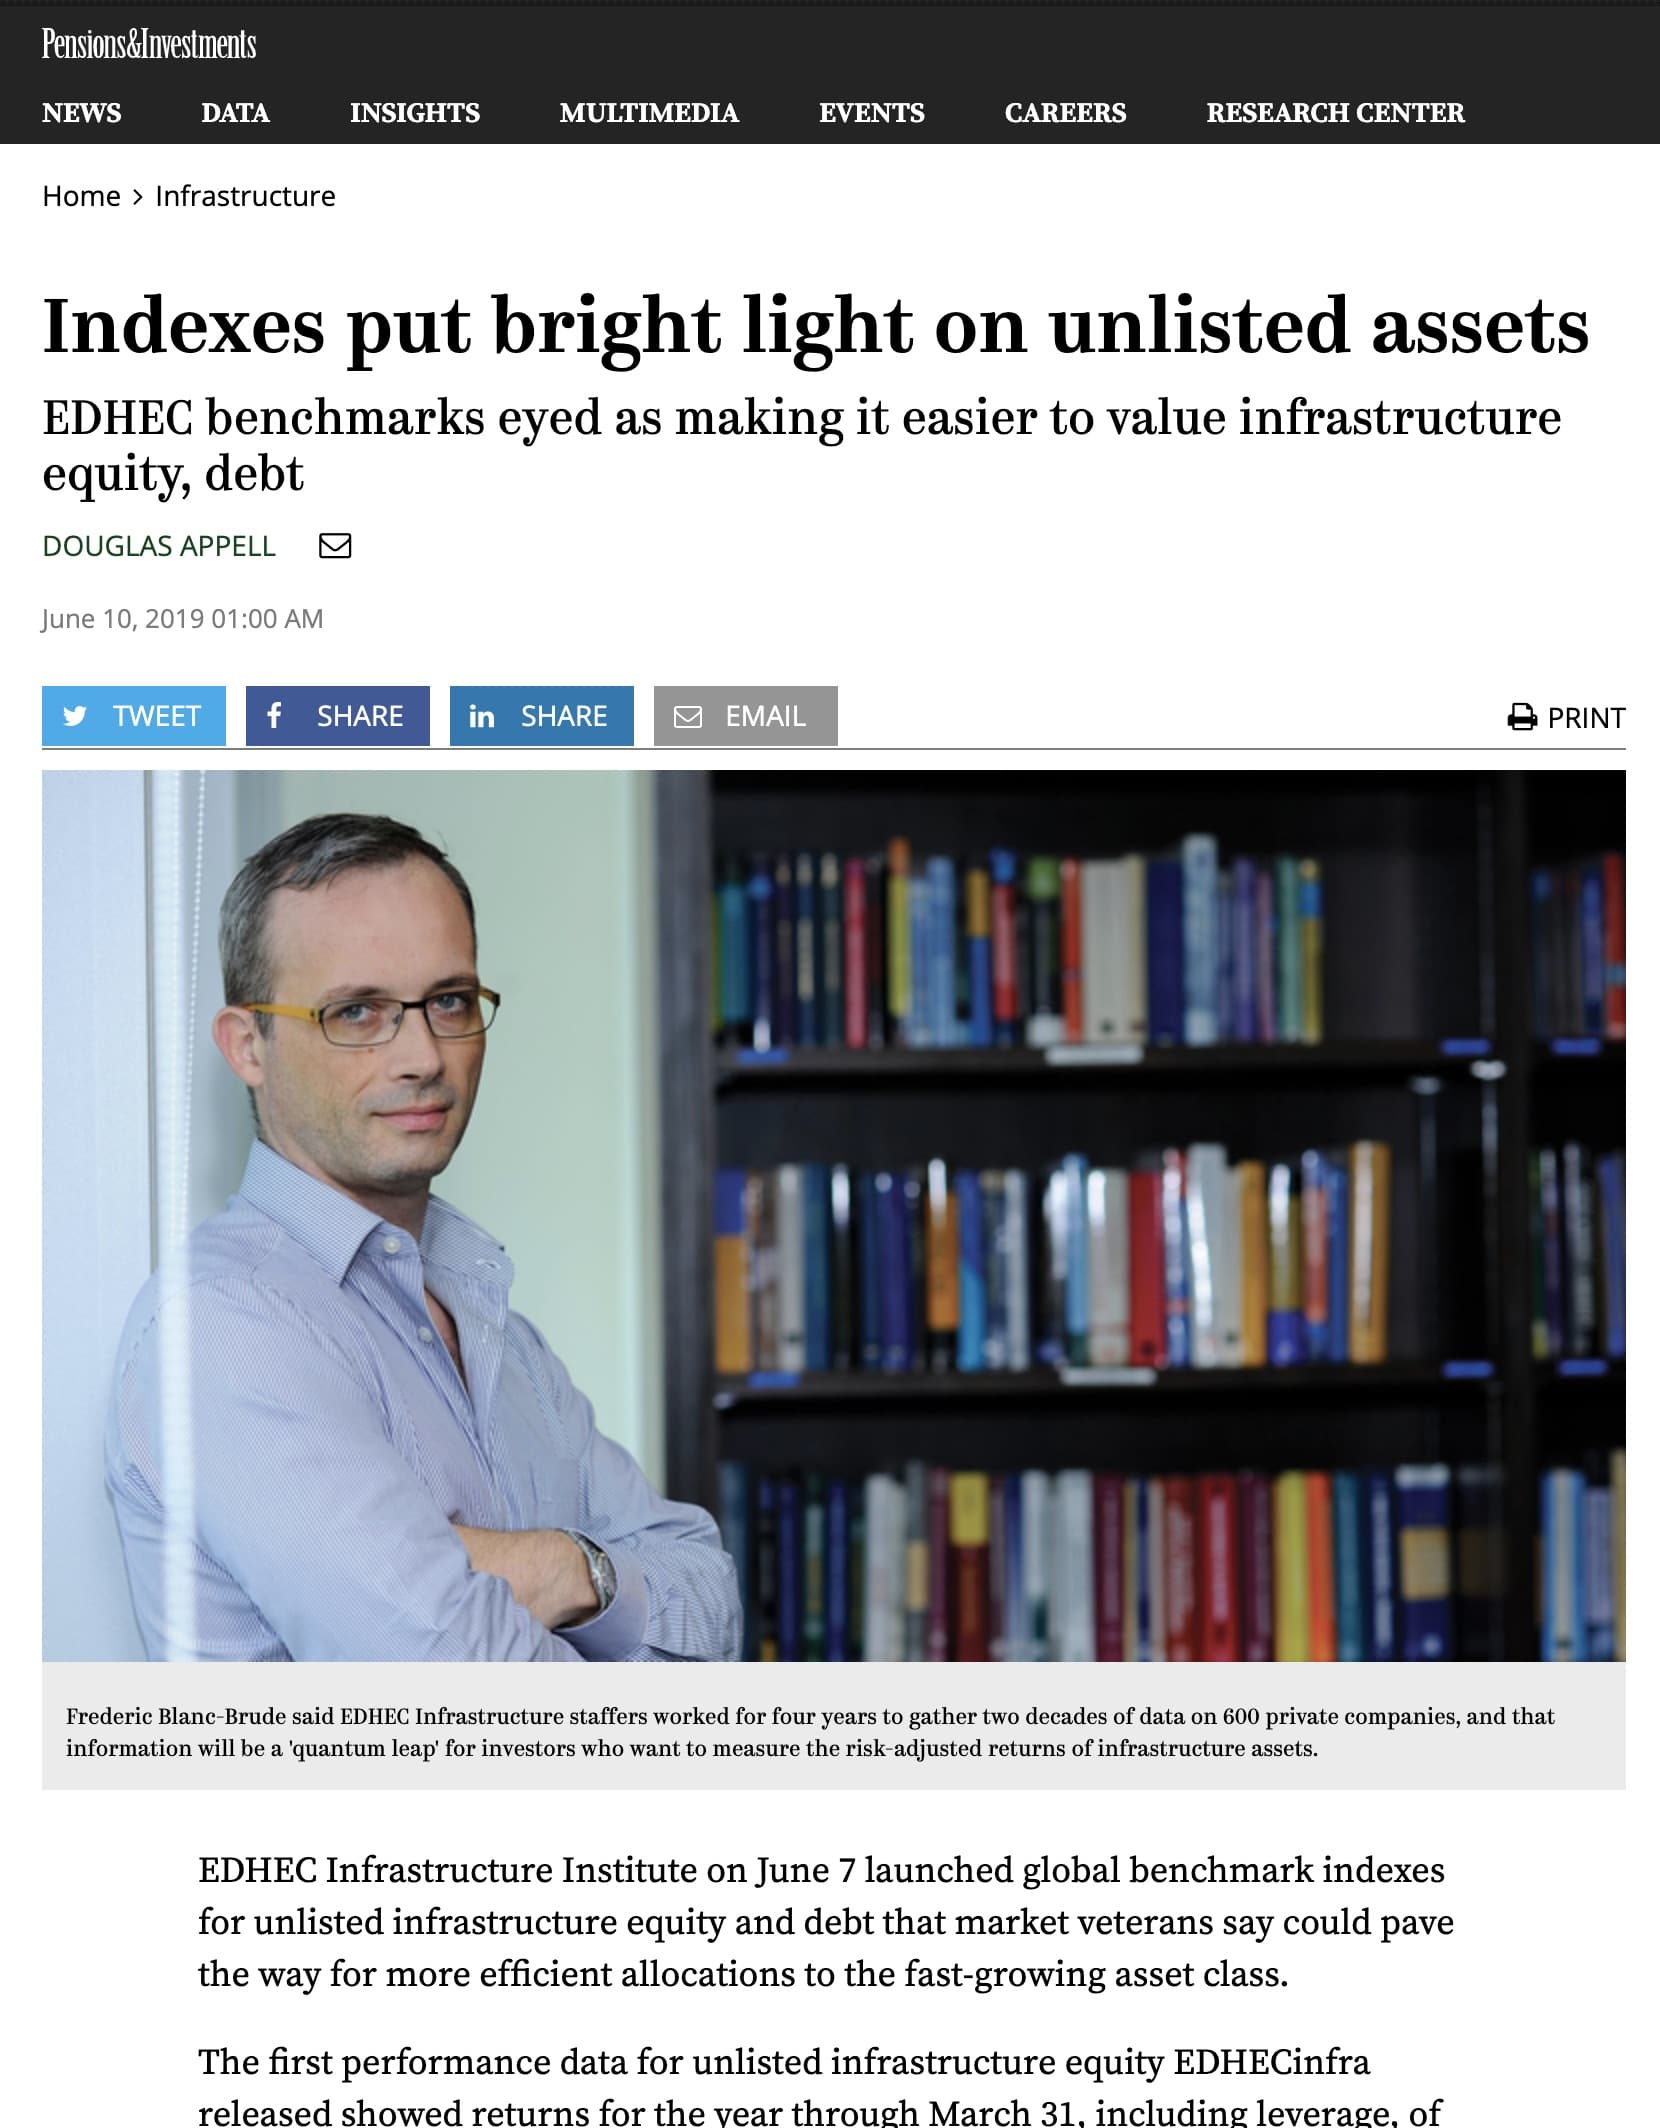 Pensions & Investments: Indexes put bright light on unlisted assets